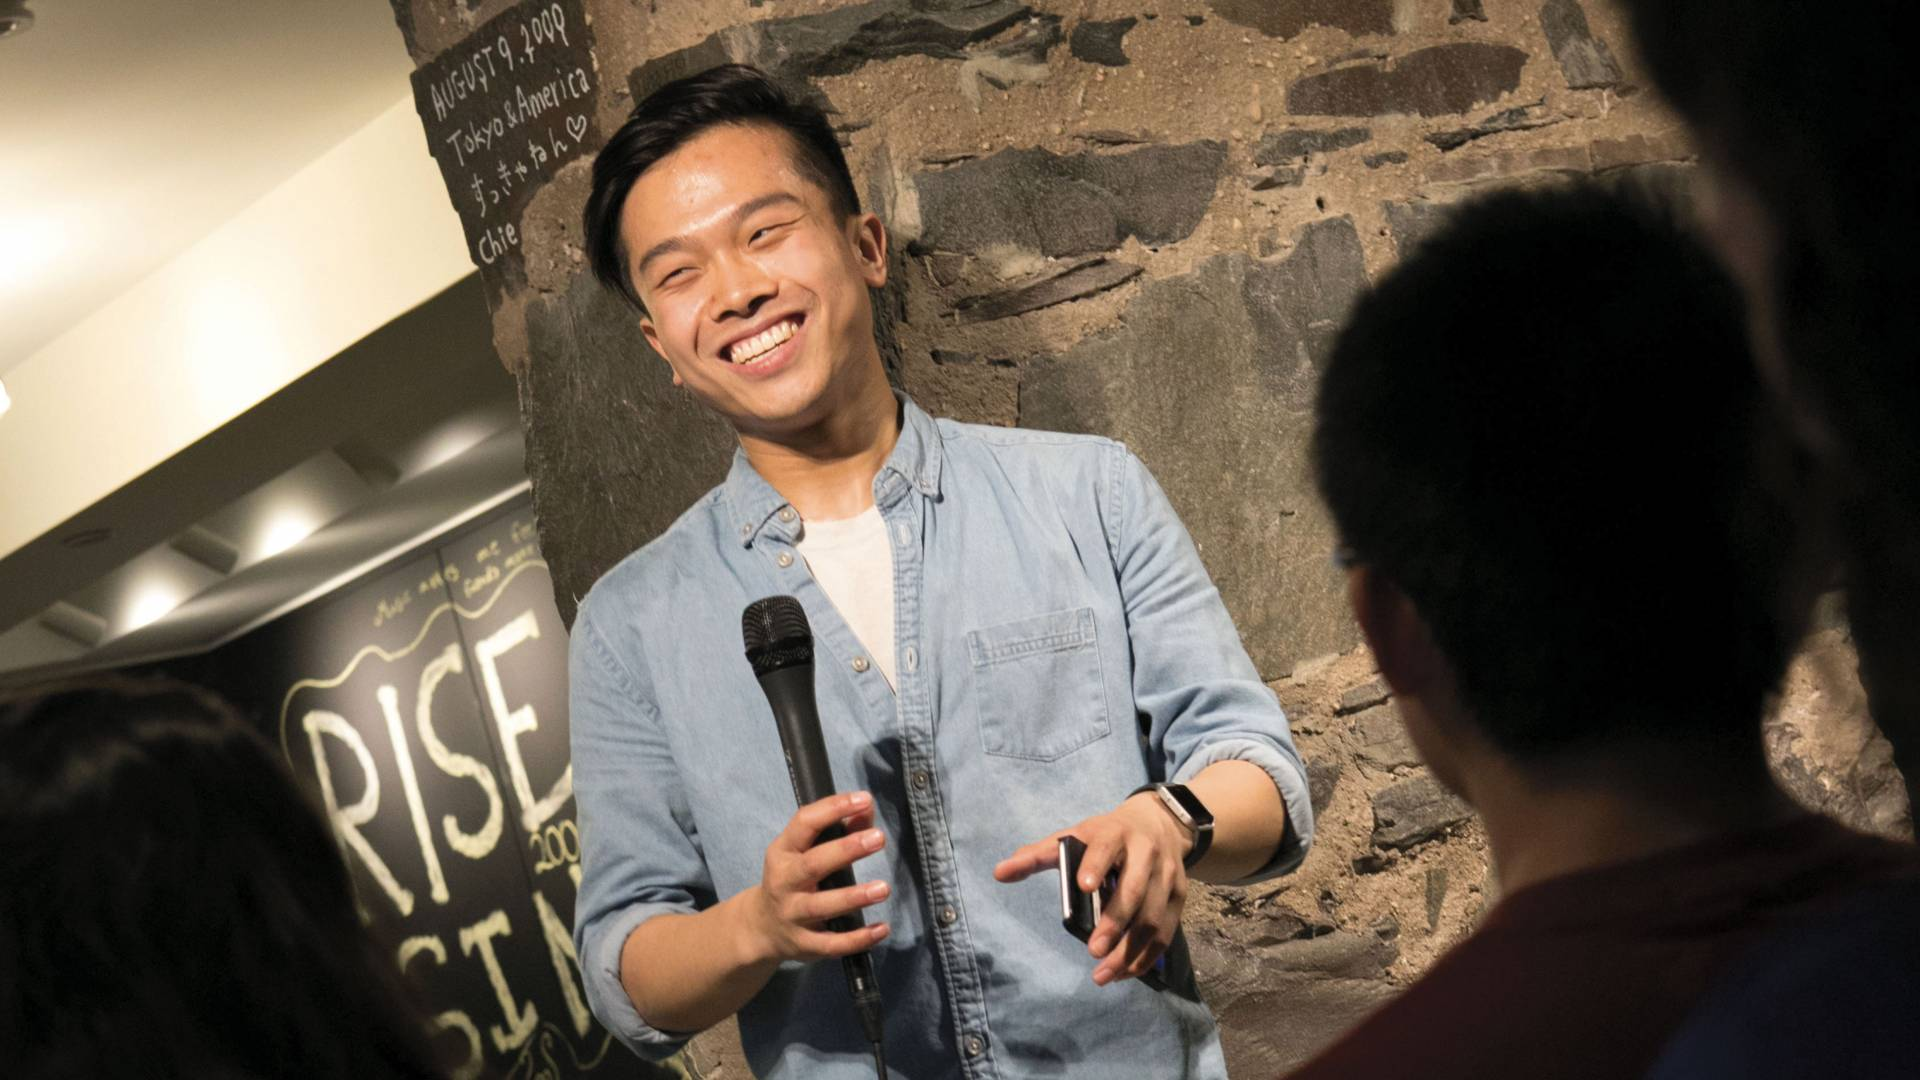 Edric Huang performing at slam poetry event